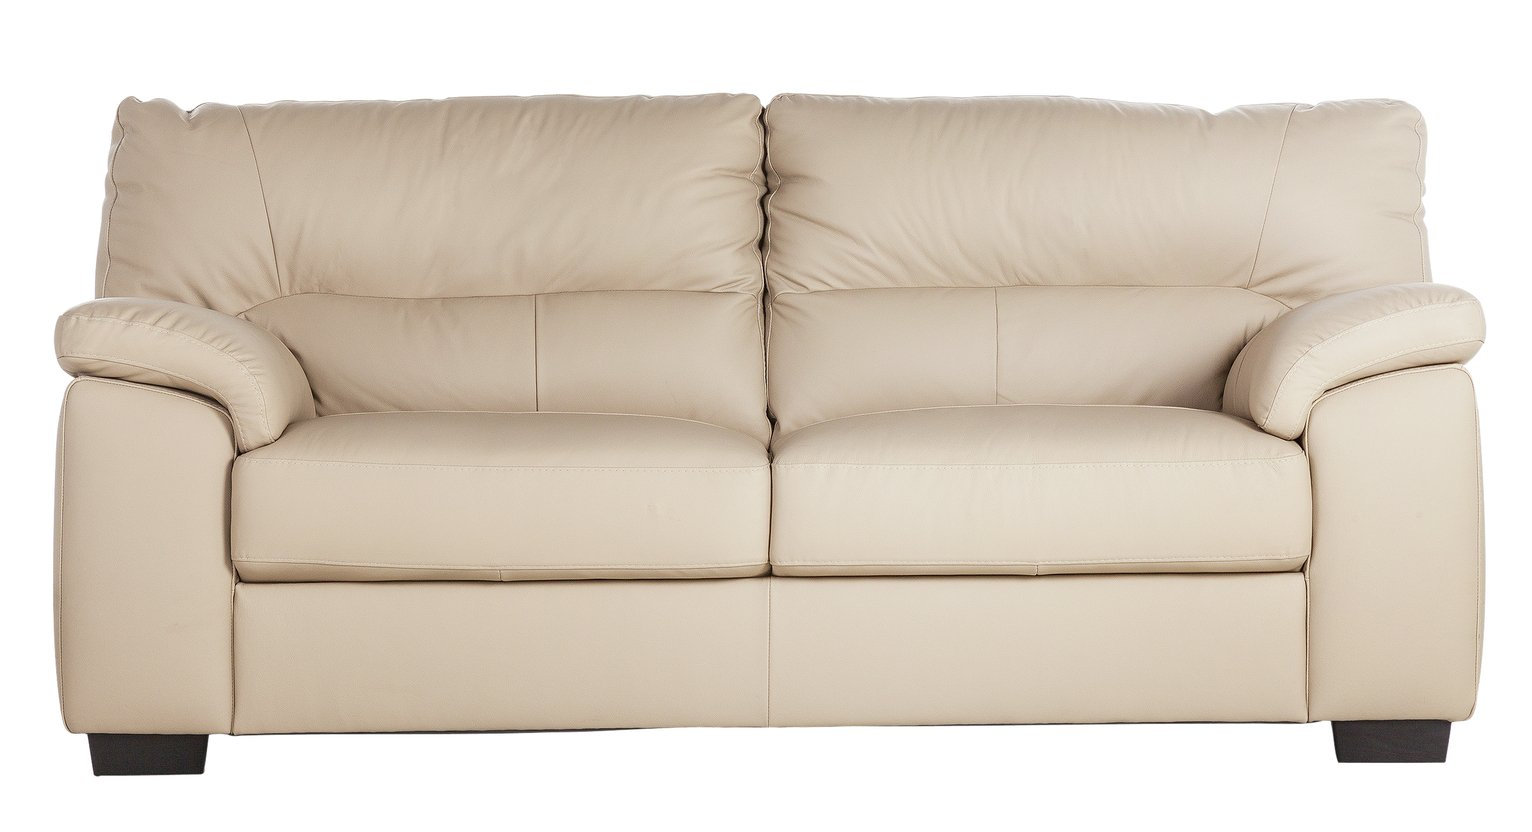 Collection - Piacenza 3 Seater - Leather Sofa - Taupe